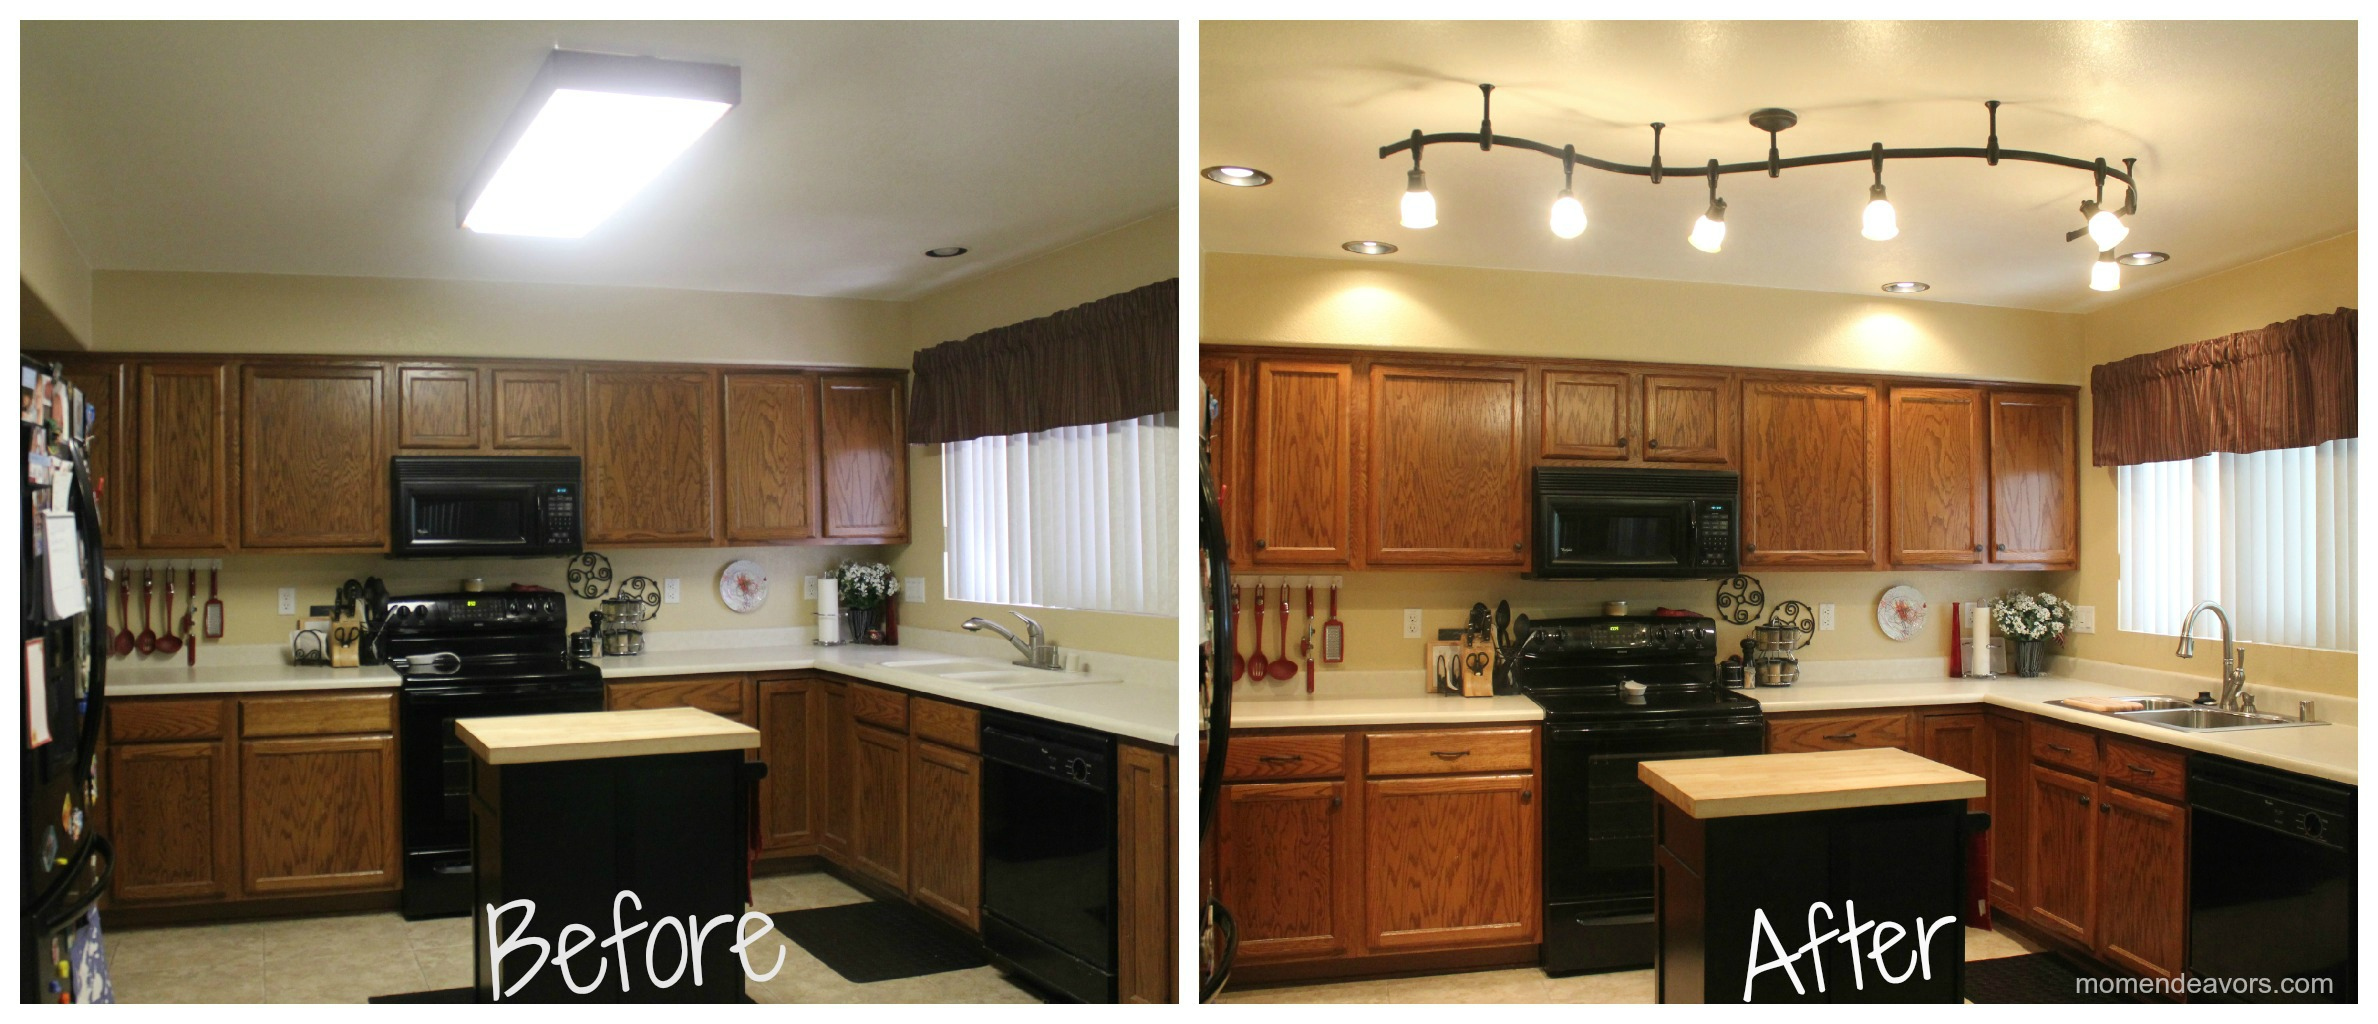 mini kitchen remodel new lighting makes a world of difference rh momendeavors com Contemporary Fluorescent Kitchen Light Contemporary Fluorescent Kitchen Light